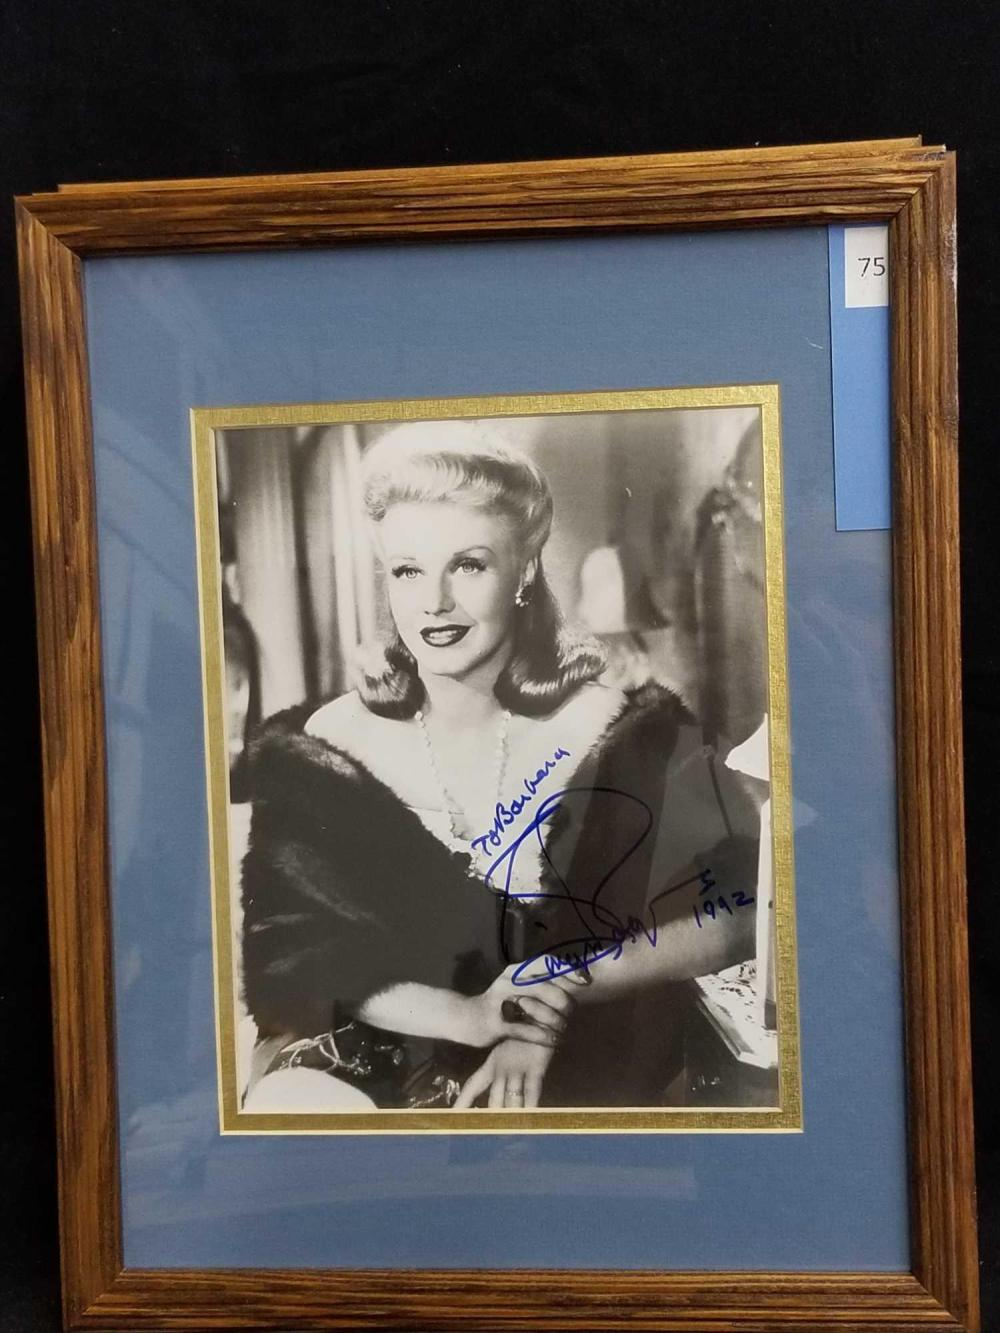 GINGER ROGERS SIGNED BLACK & WHITE MOVIE STILL PHOTO